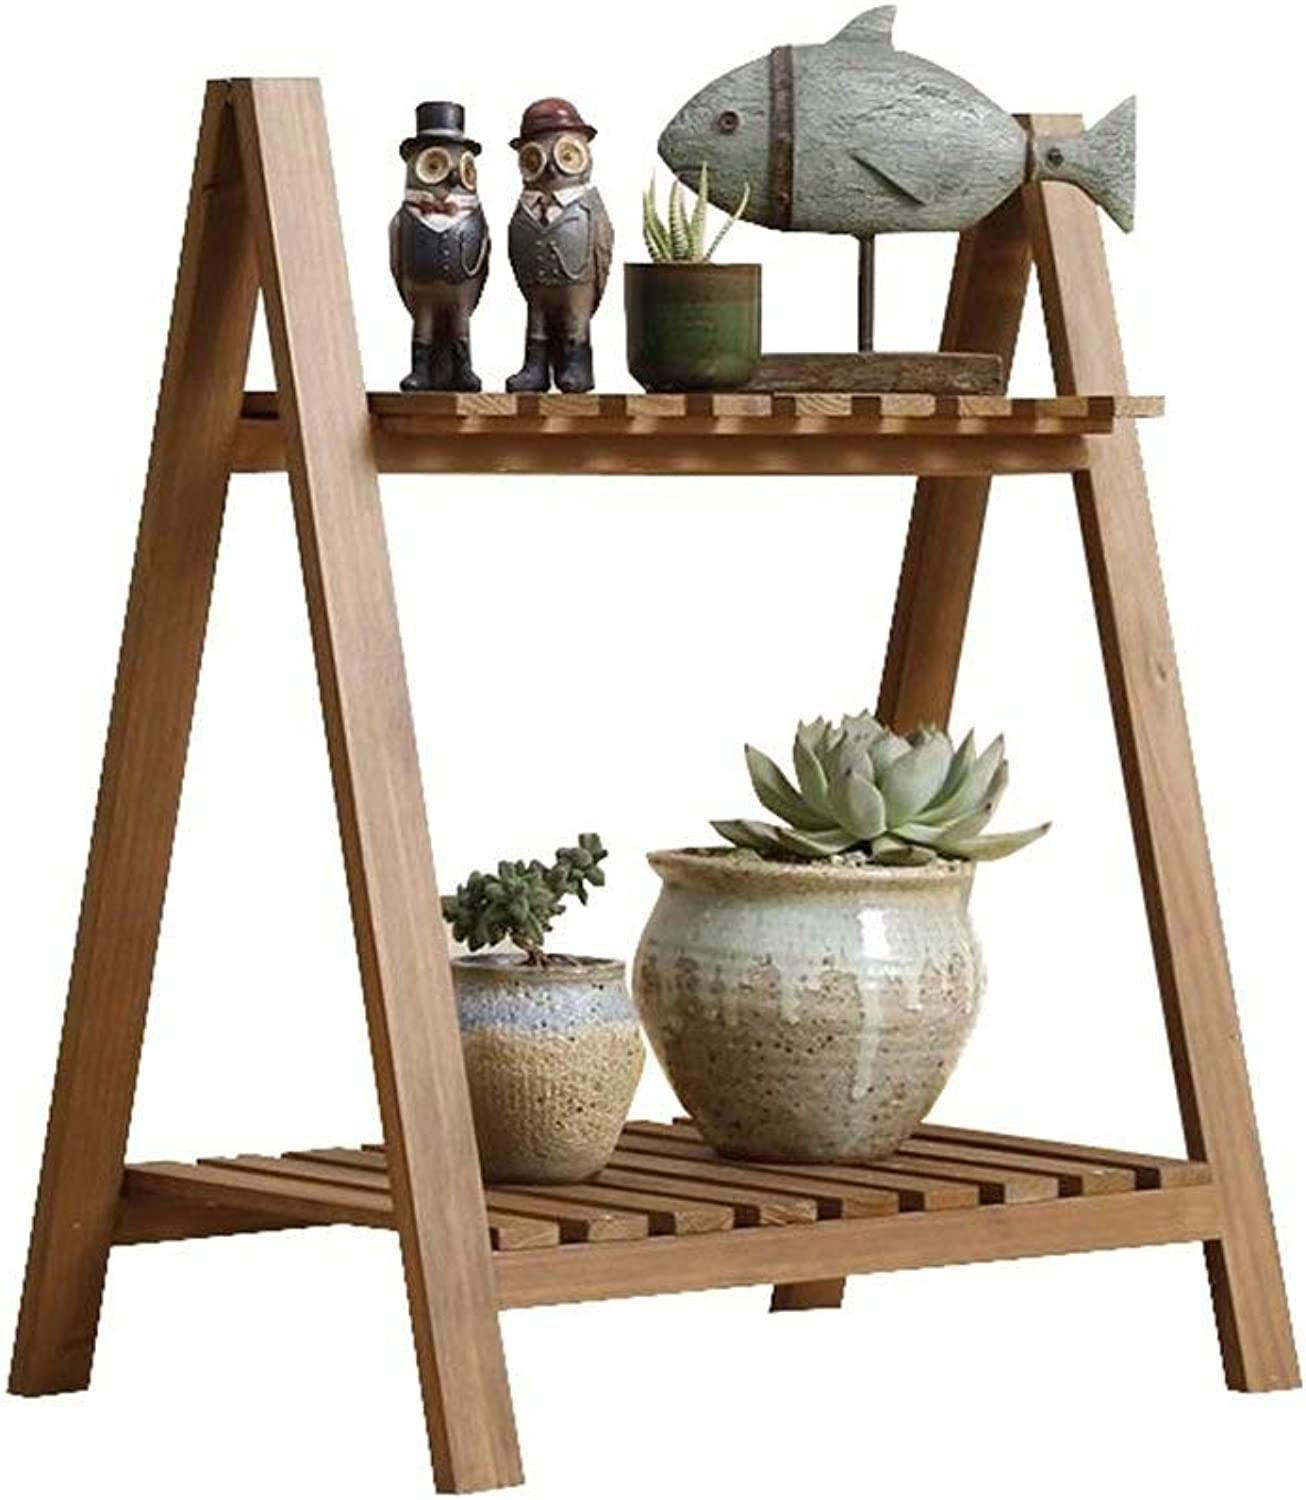 Plant stand Simple Flower Stand Wooden 2 Tier Succulents Rack Small Potted Shelf Chlgoldphytum Bedroom Living Room Vintage Brown Indoor Outdoor Size L50 Cm X W33 Cm X H59 H18.5 Cm Flower pot flower dis